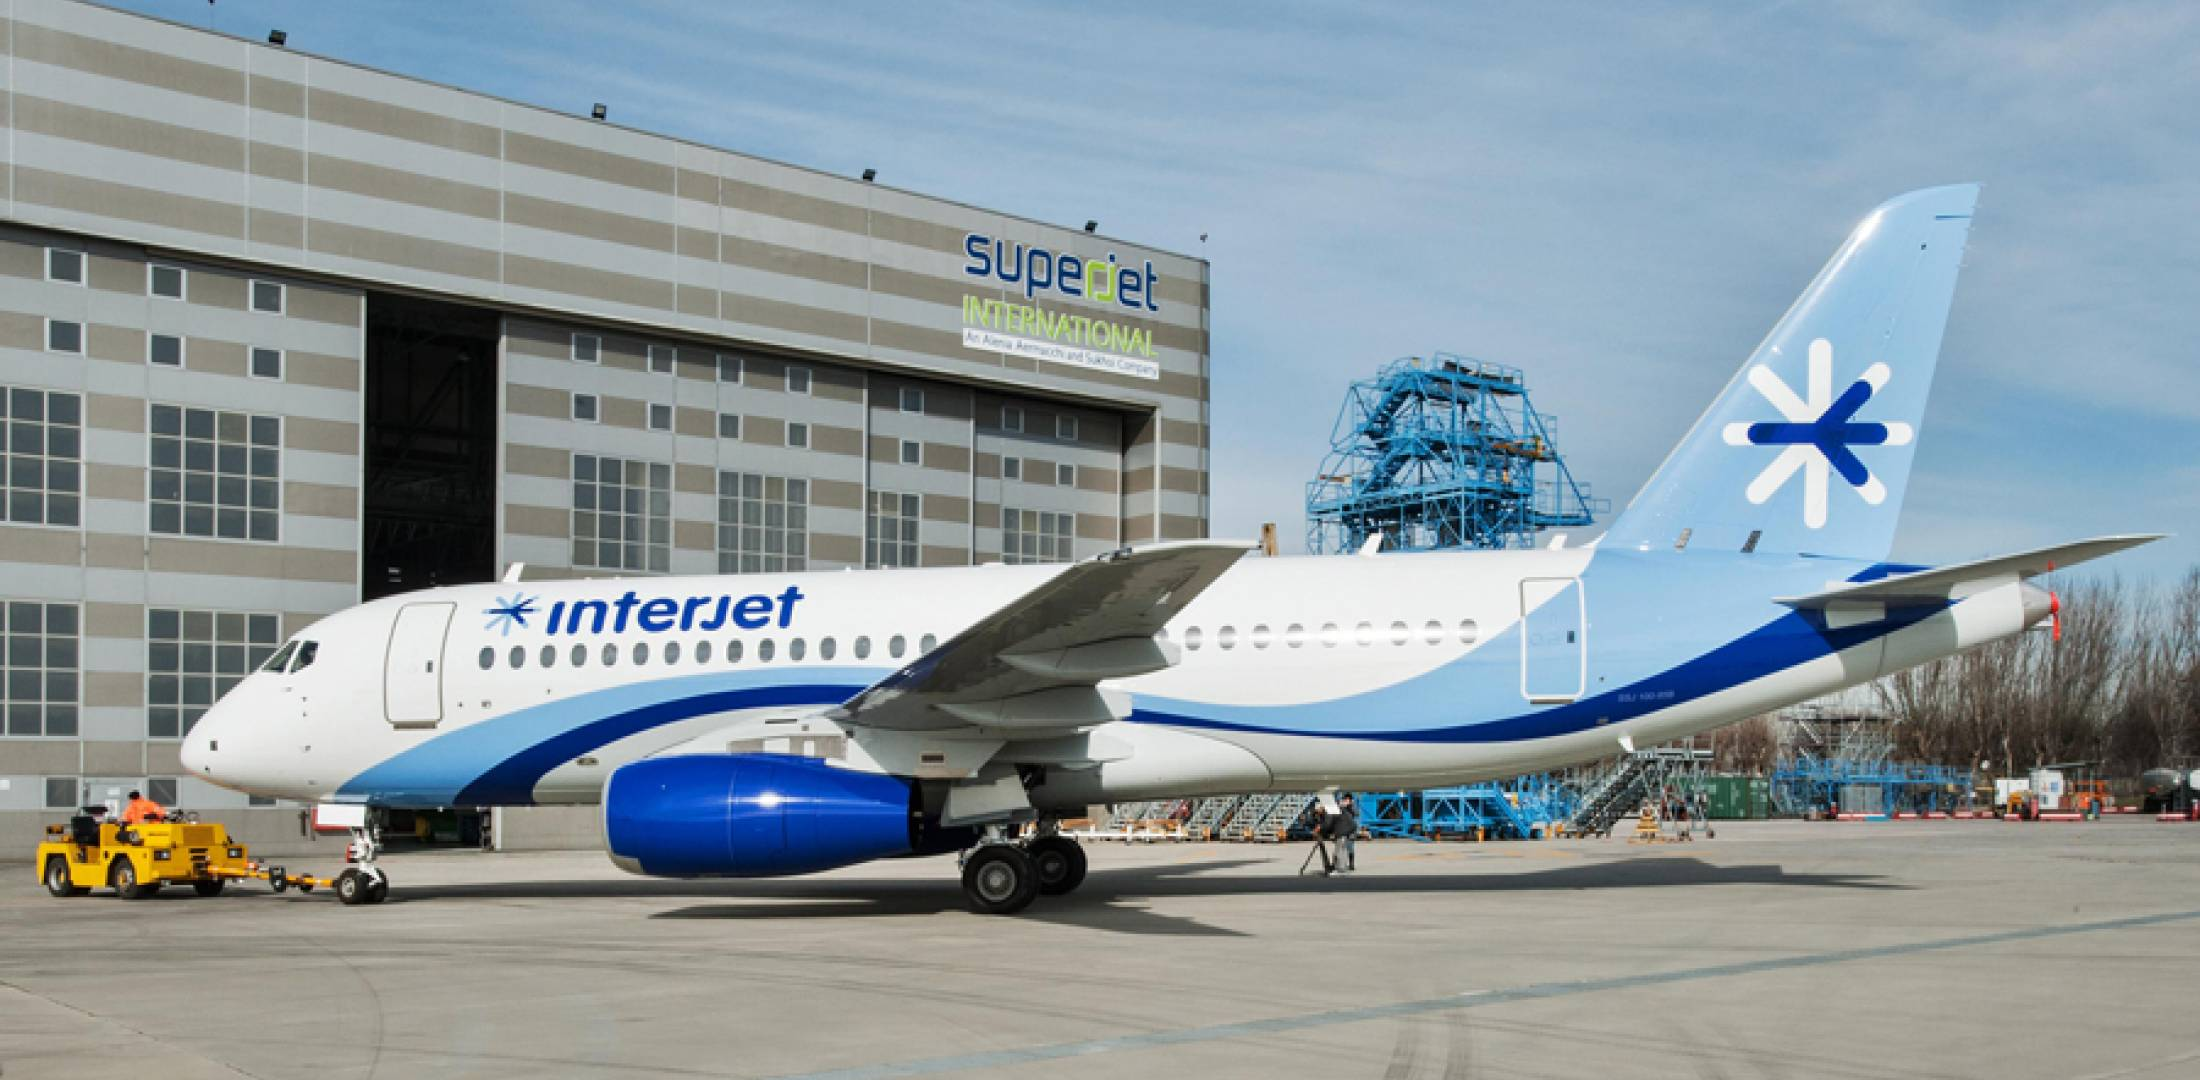 Mexico's Interjet expects to take delivery of its first Sukhoi SSJ100 this month.